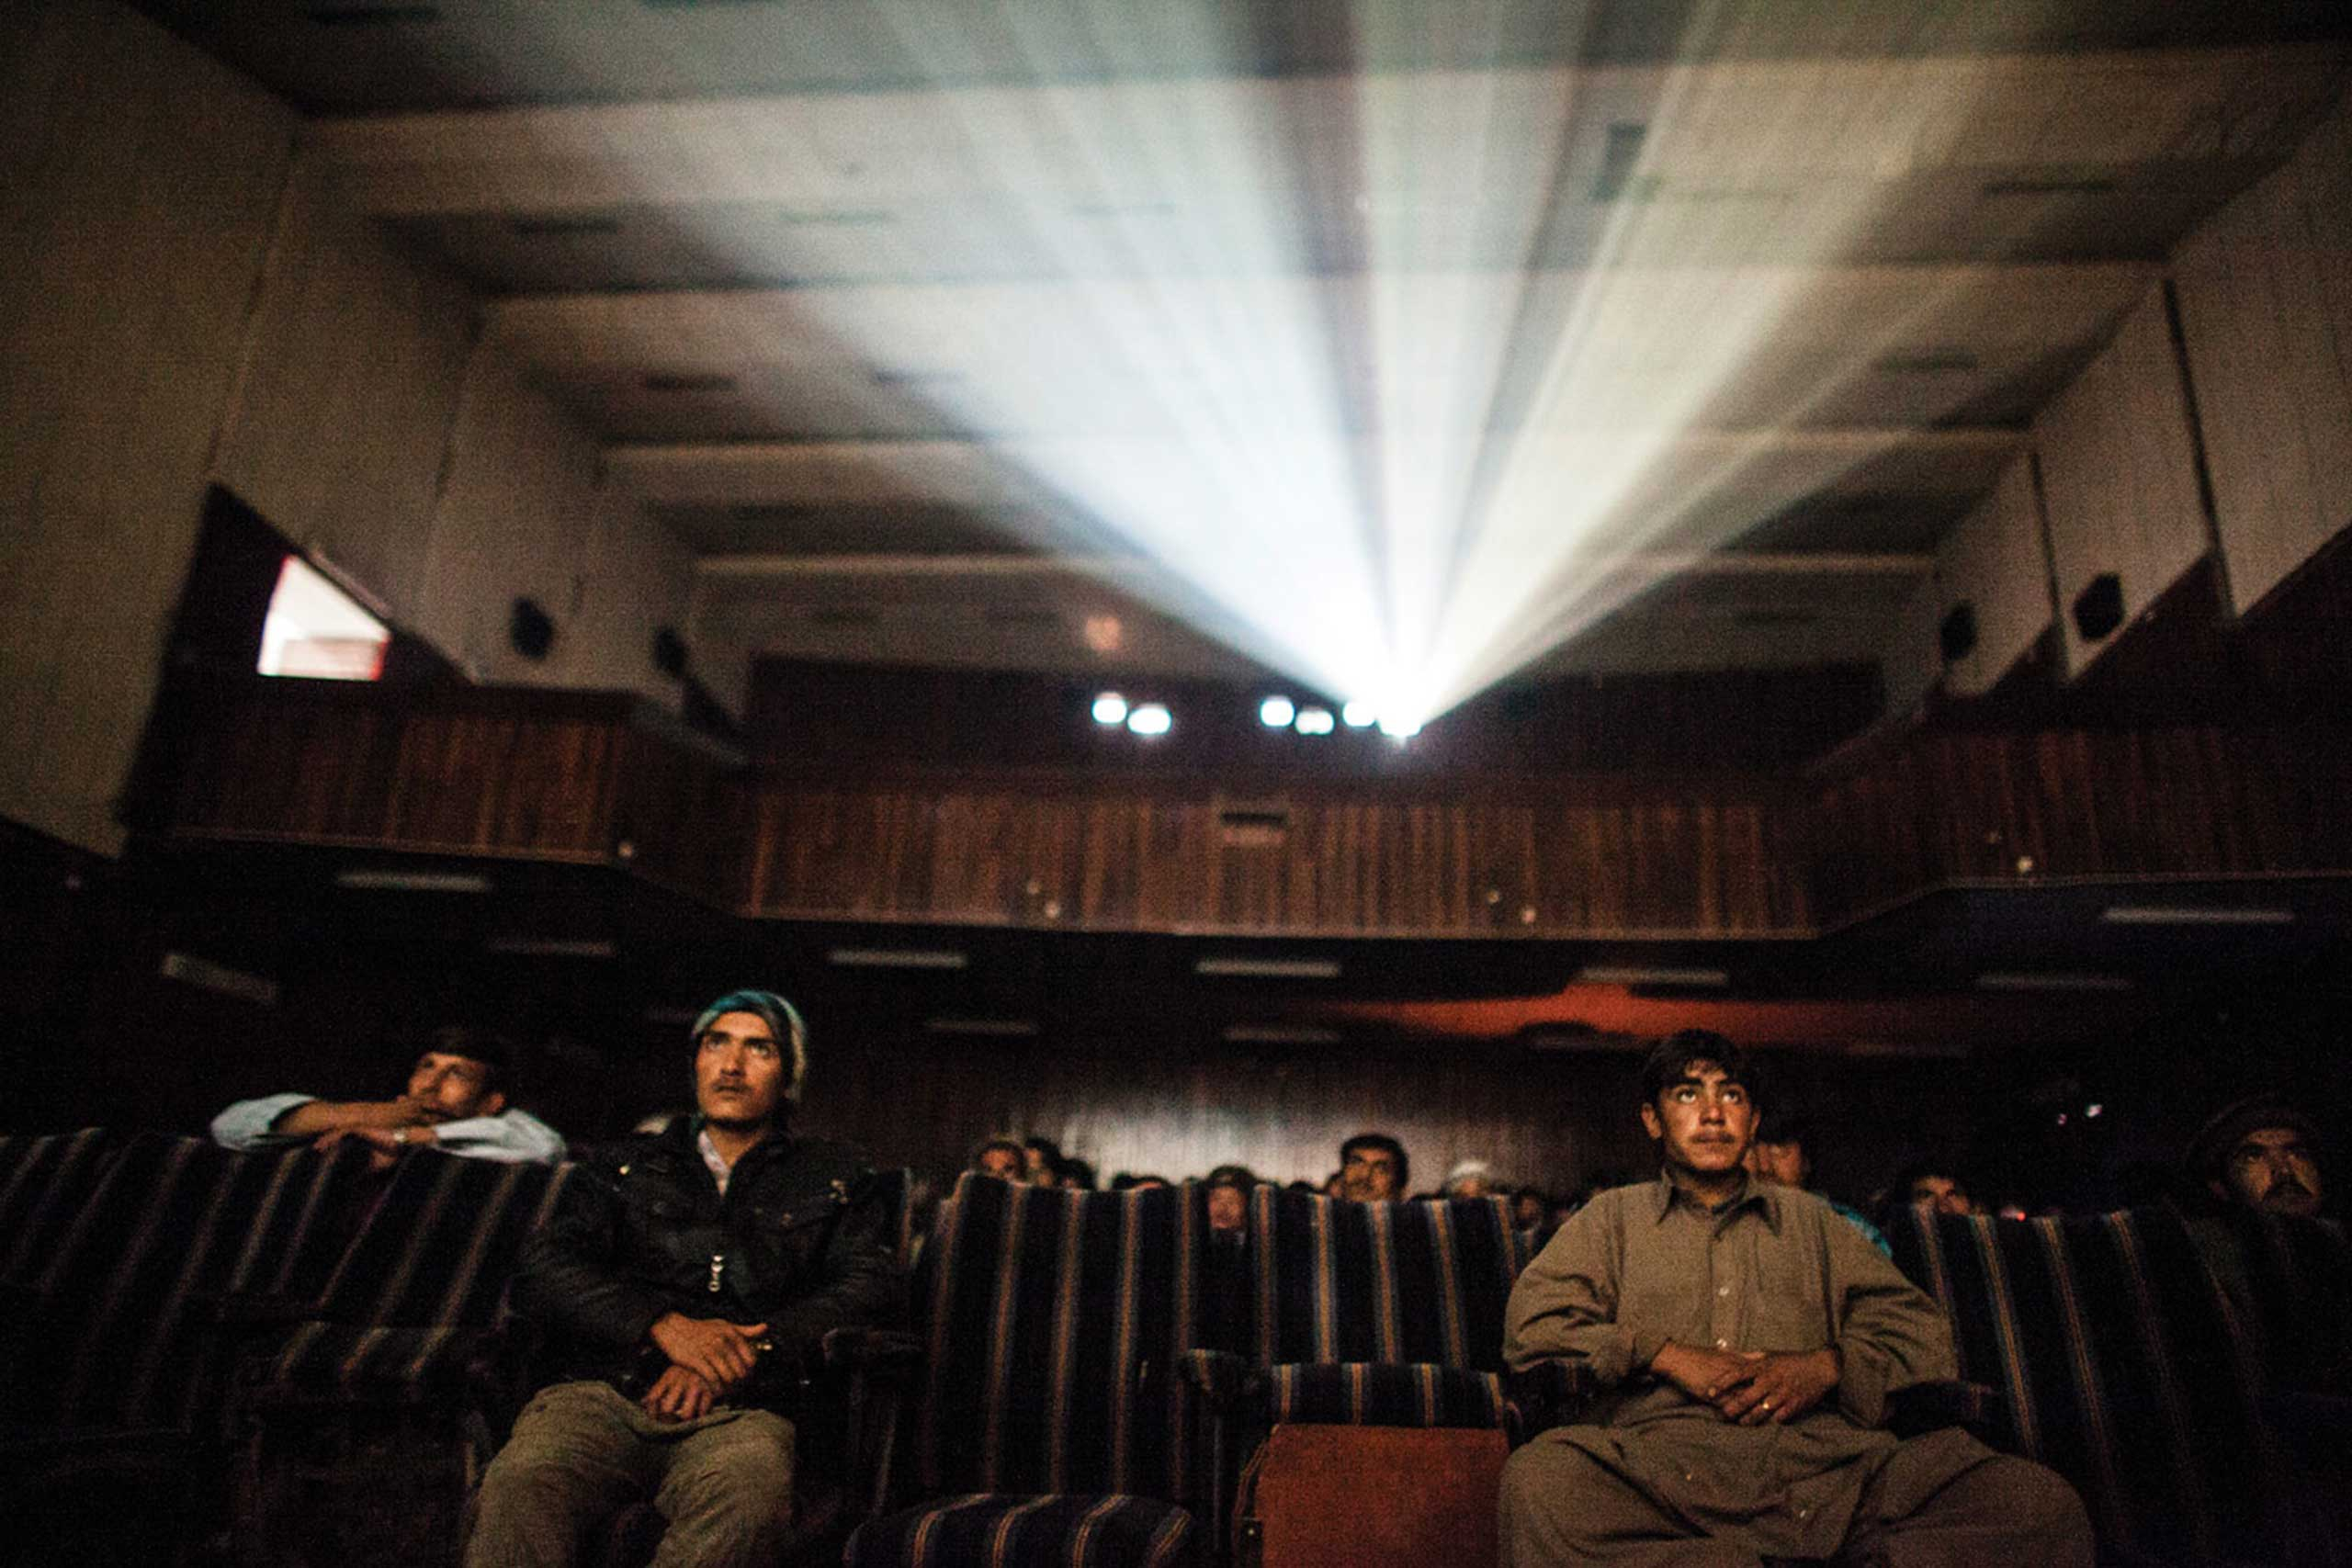 """""""Jonathan Saruk's <i>The Forbidden Reel</i> shows a delicate sliver of life in a country that is notorious for war images. The book is intimate. It allures you into a private place that is usually shrouded in darkness. Saruk's passion for the project is evident in the work. He documents the theaters of Kabul, the projectionists, the screens, and the film itself. But most importantly, Saruk documents the moviegoers. This work provides very important insight into the life of young people in Kabul, through a lens that doesn't involve war or poverty.                                                                      It's an escape from reality for the reader and for the subjects of the pictures - as movies were intended to be.""""                                                                       -Marisa Schwartz, Associate Photo Editor, <i>TIME.com</i>."""